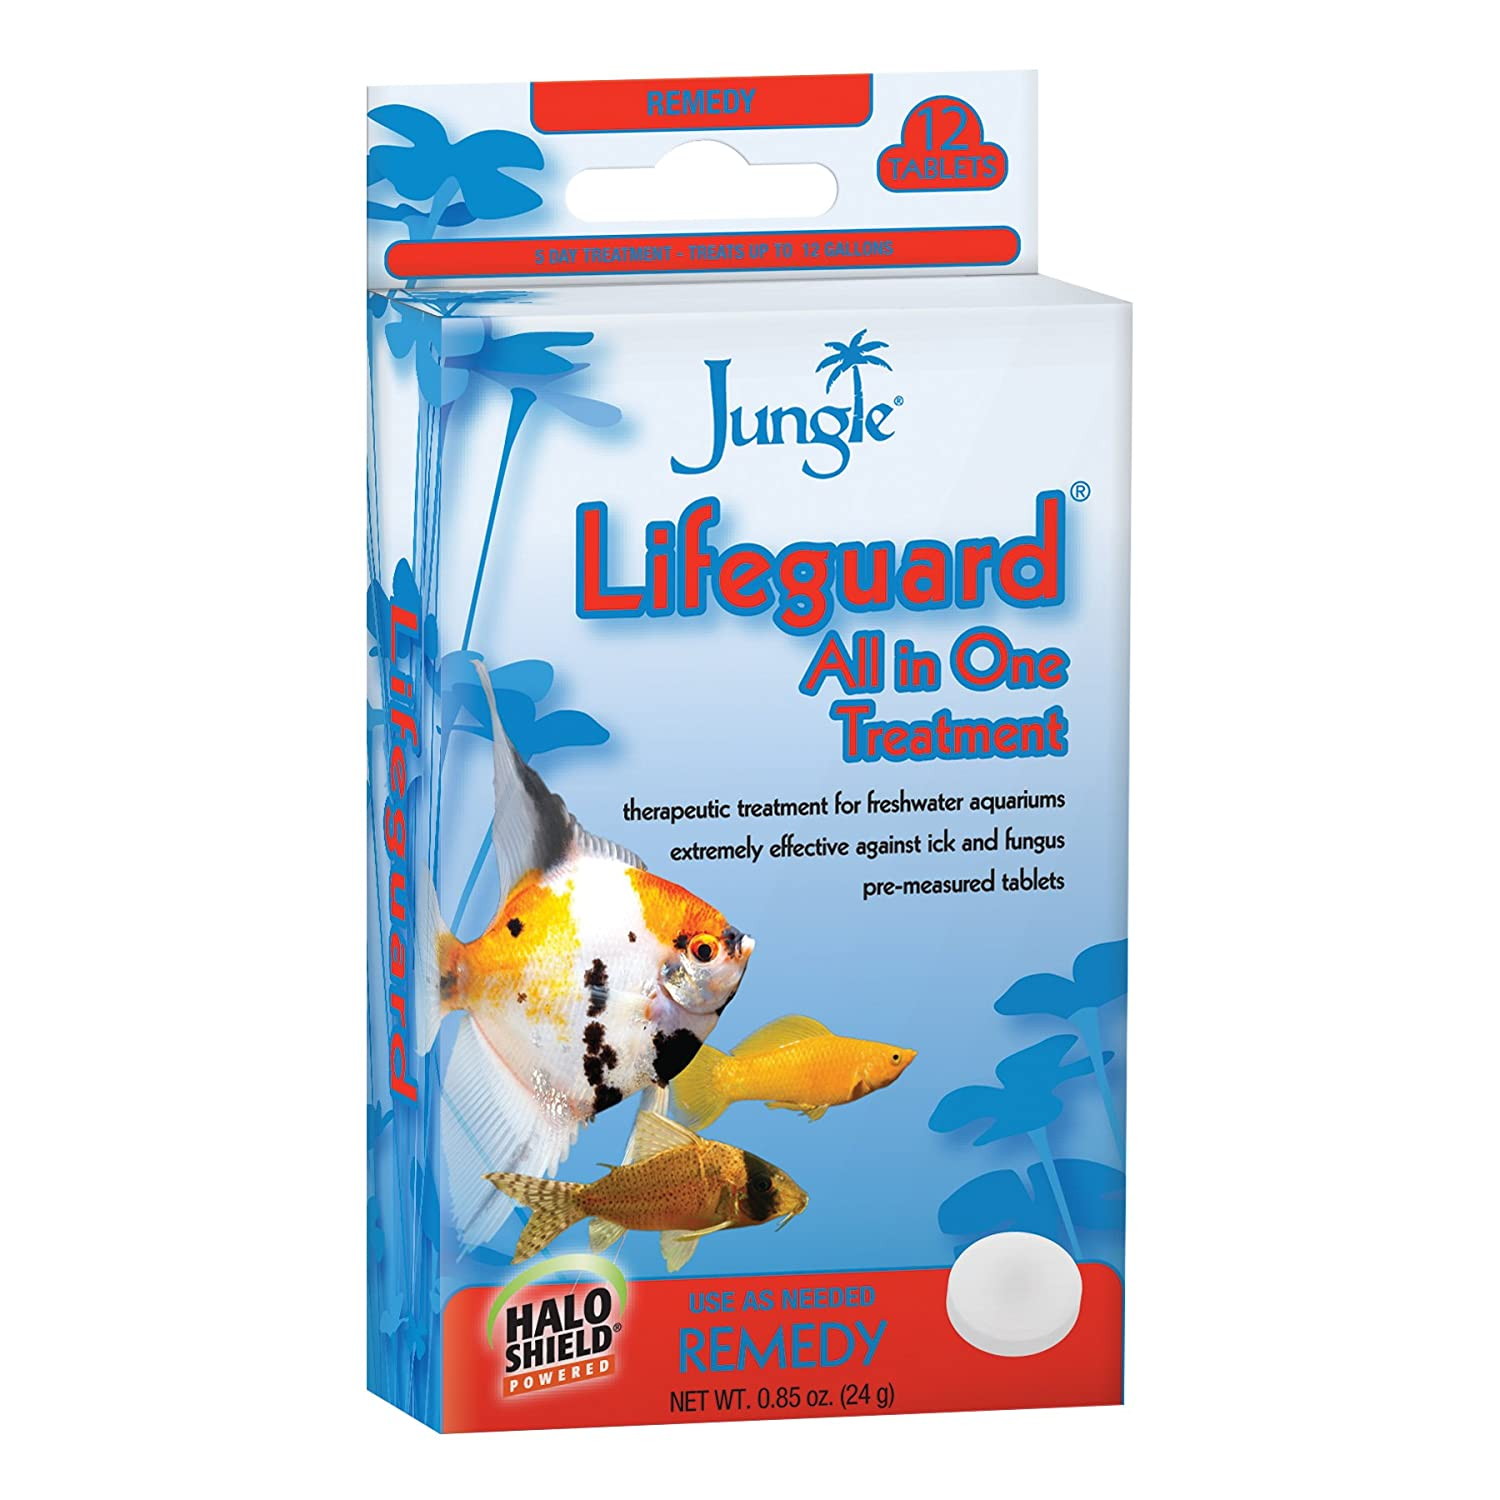 tt101 W de la selva Jungle Lifeguard, 12-tablets, 12 pestañas: Amazon.es: Productos para mascotas